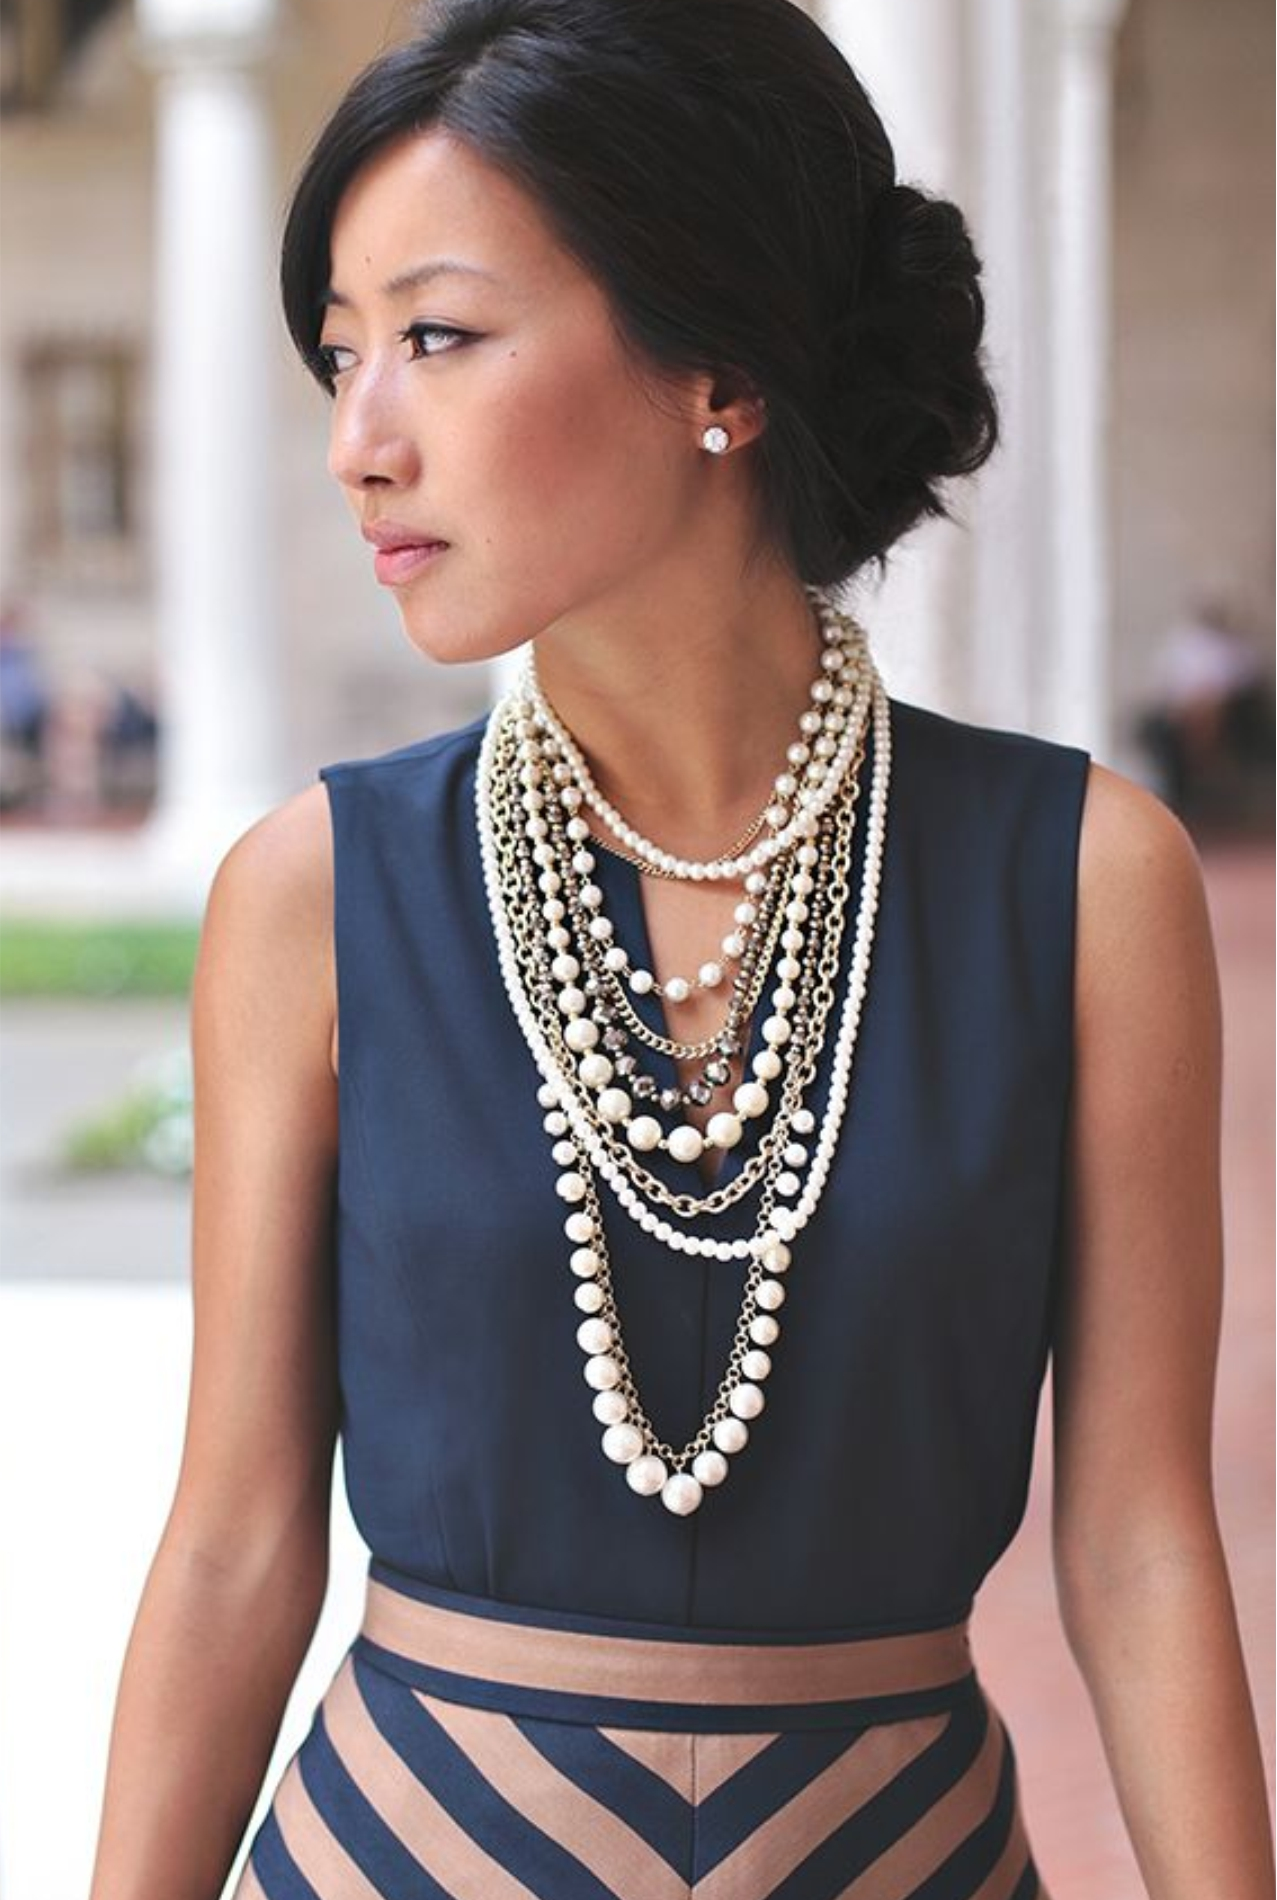 blog_collateral_image_bizjewelry.jpg